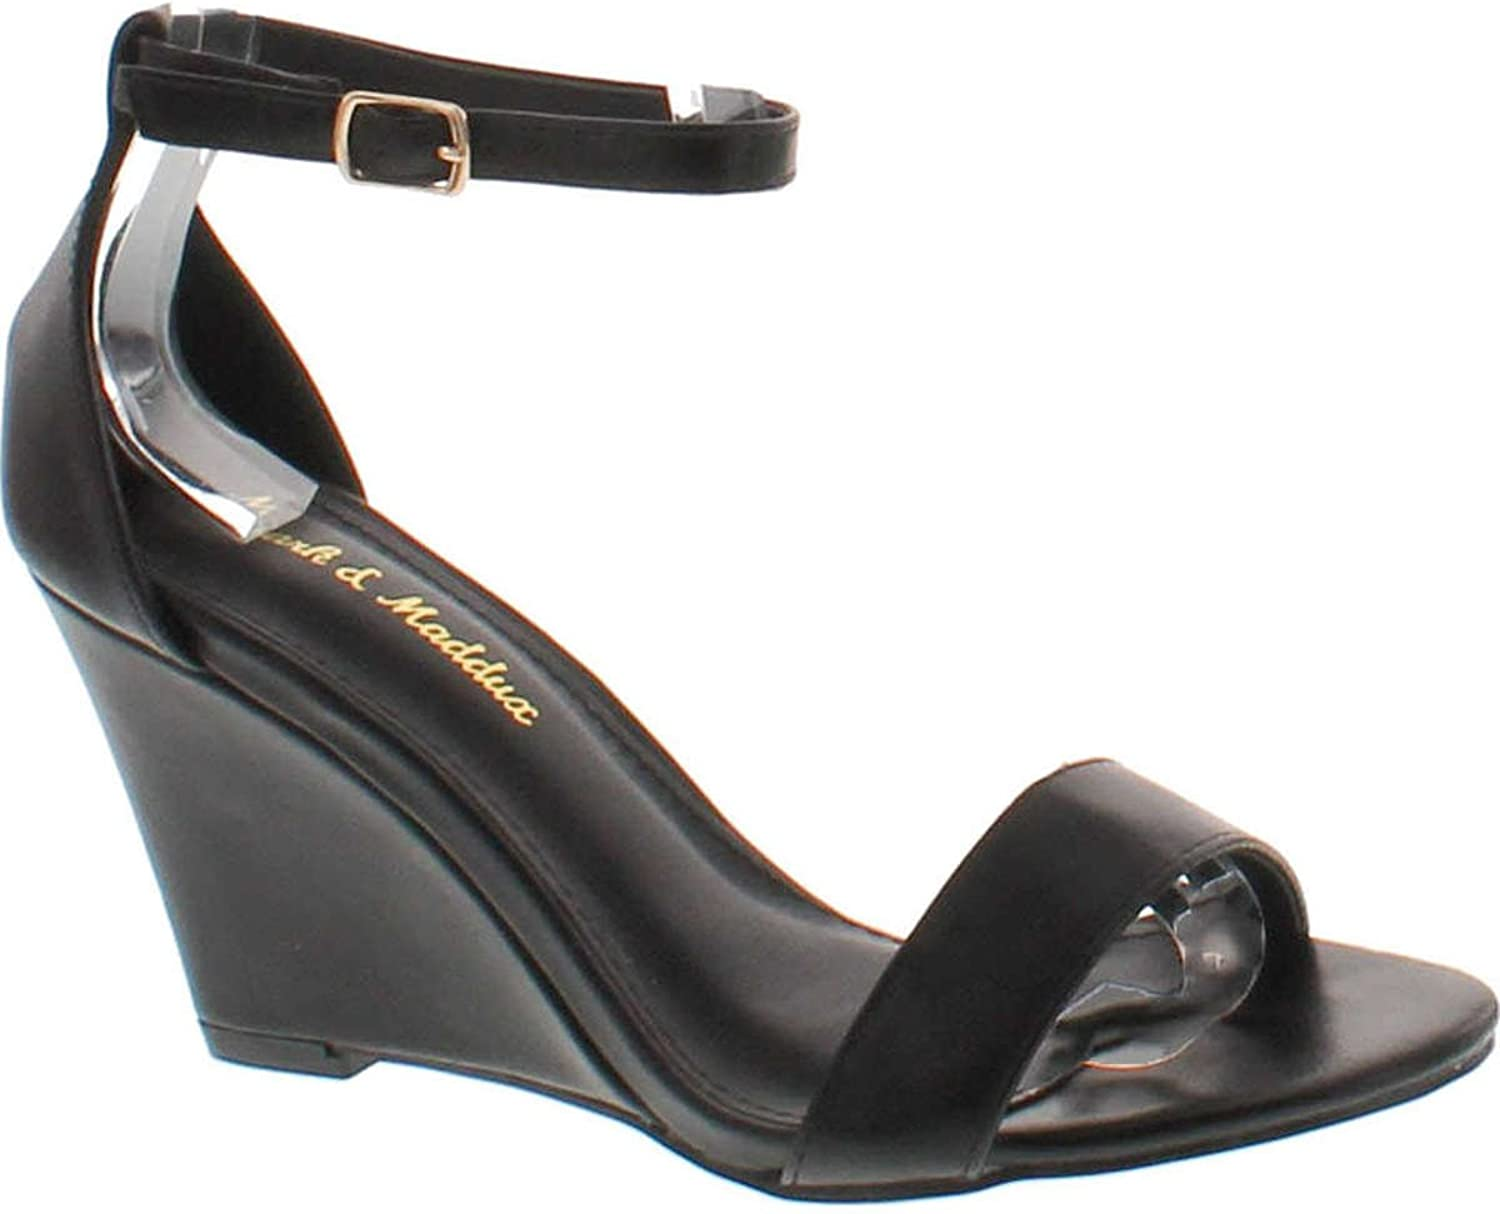 Mark And Maddux Elisha-13 Wedge Sandal In Black